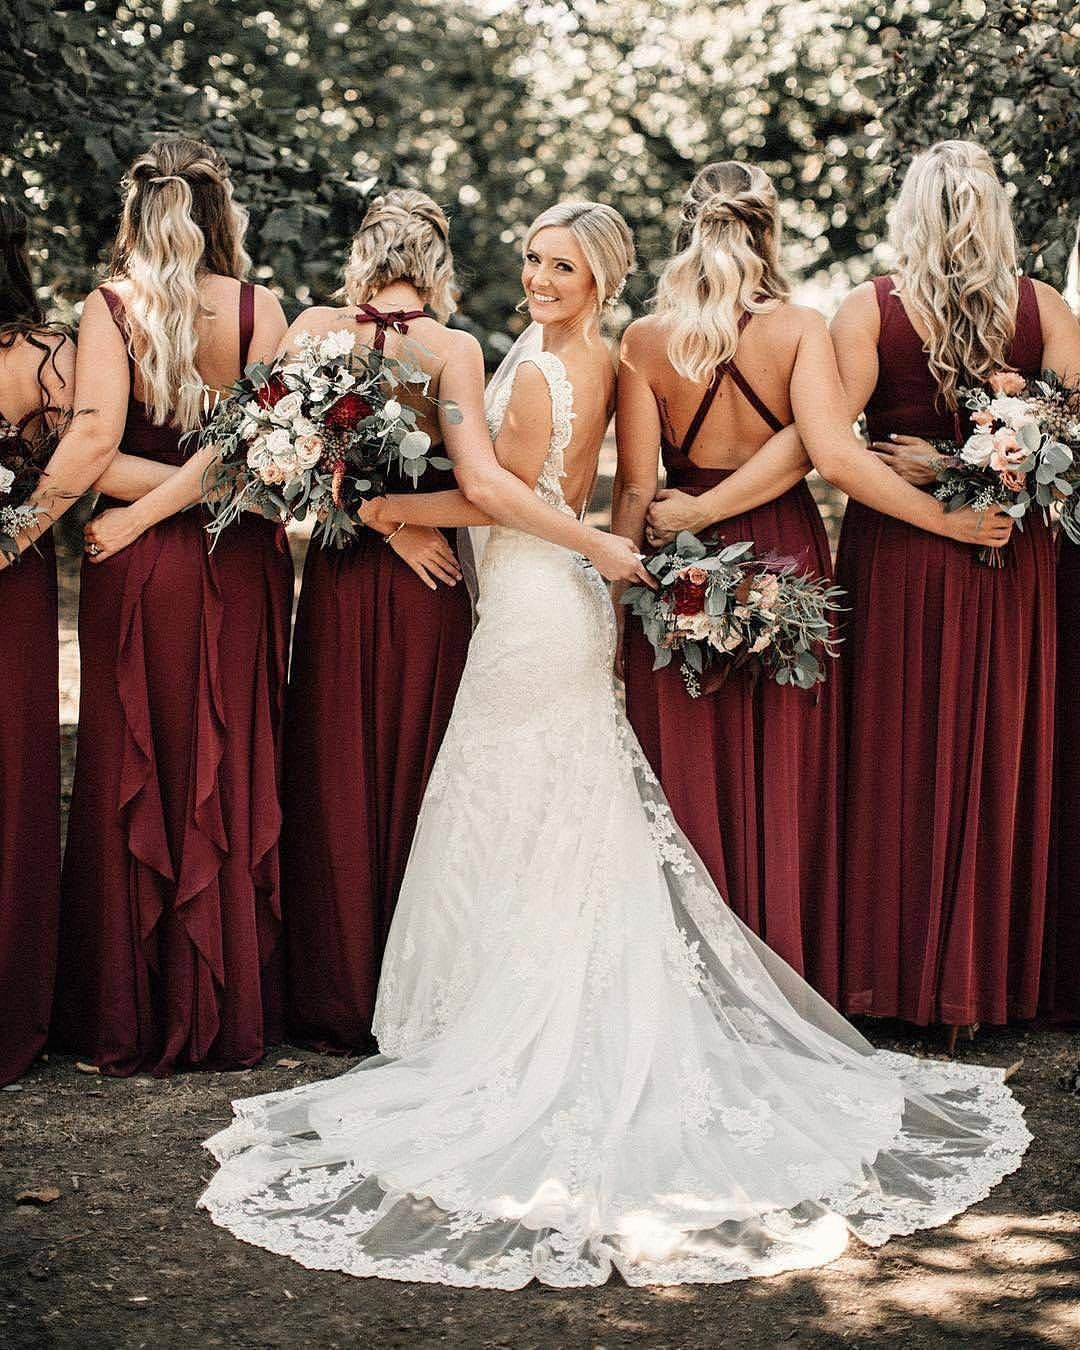 The wedding bliss on instagram uclove these wine colored bridesmaids